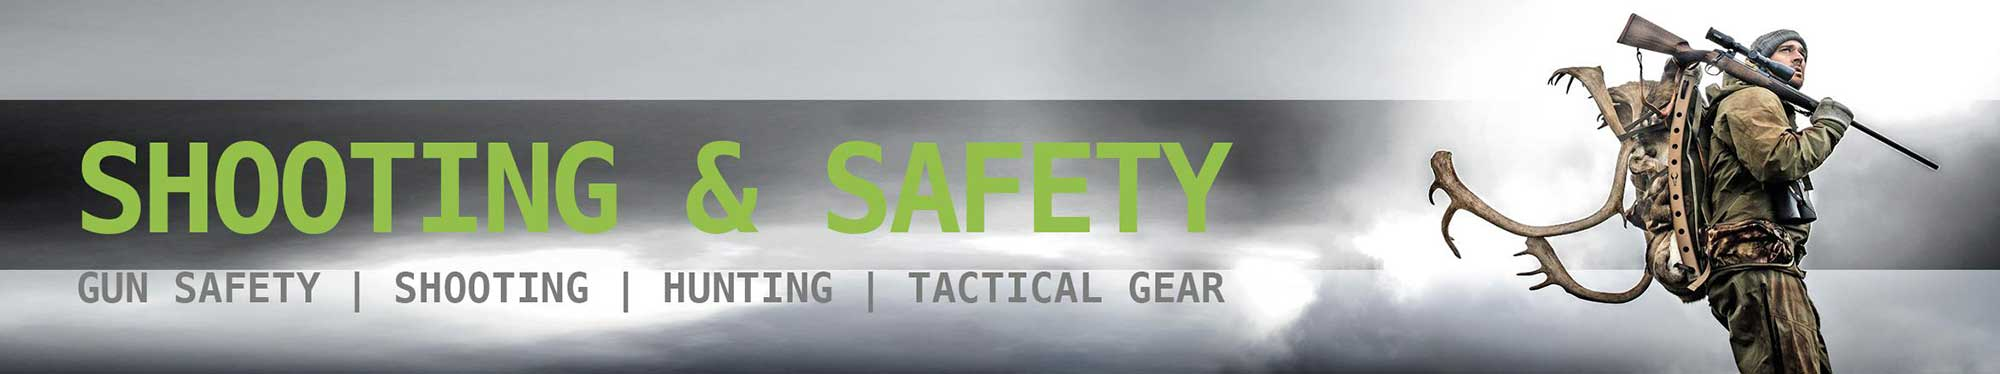 Shooting & Safety